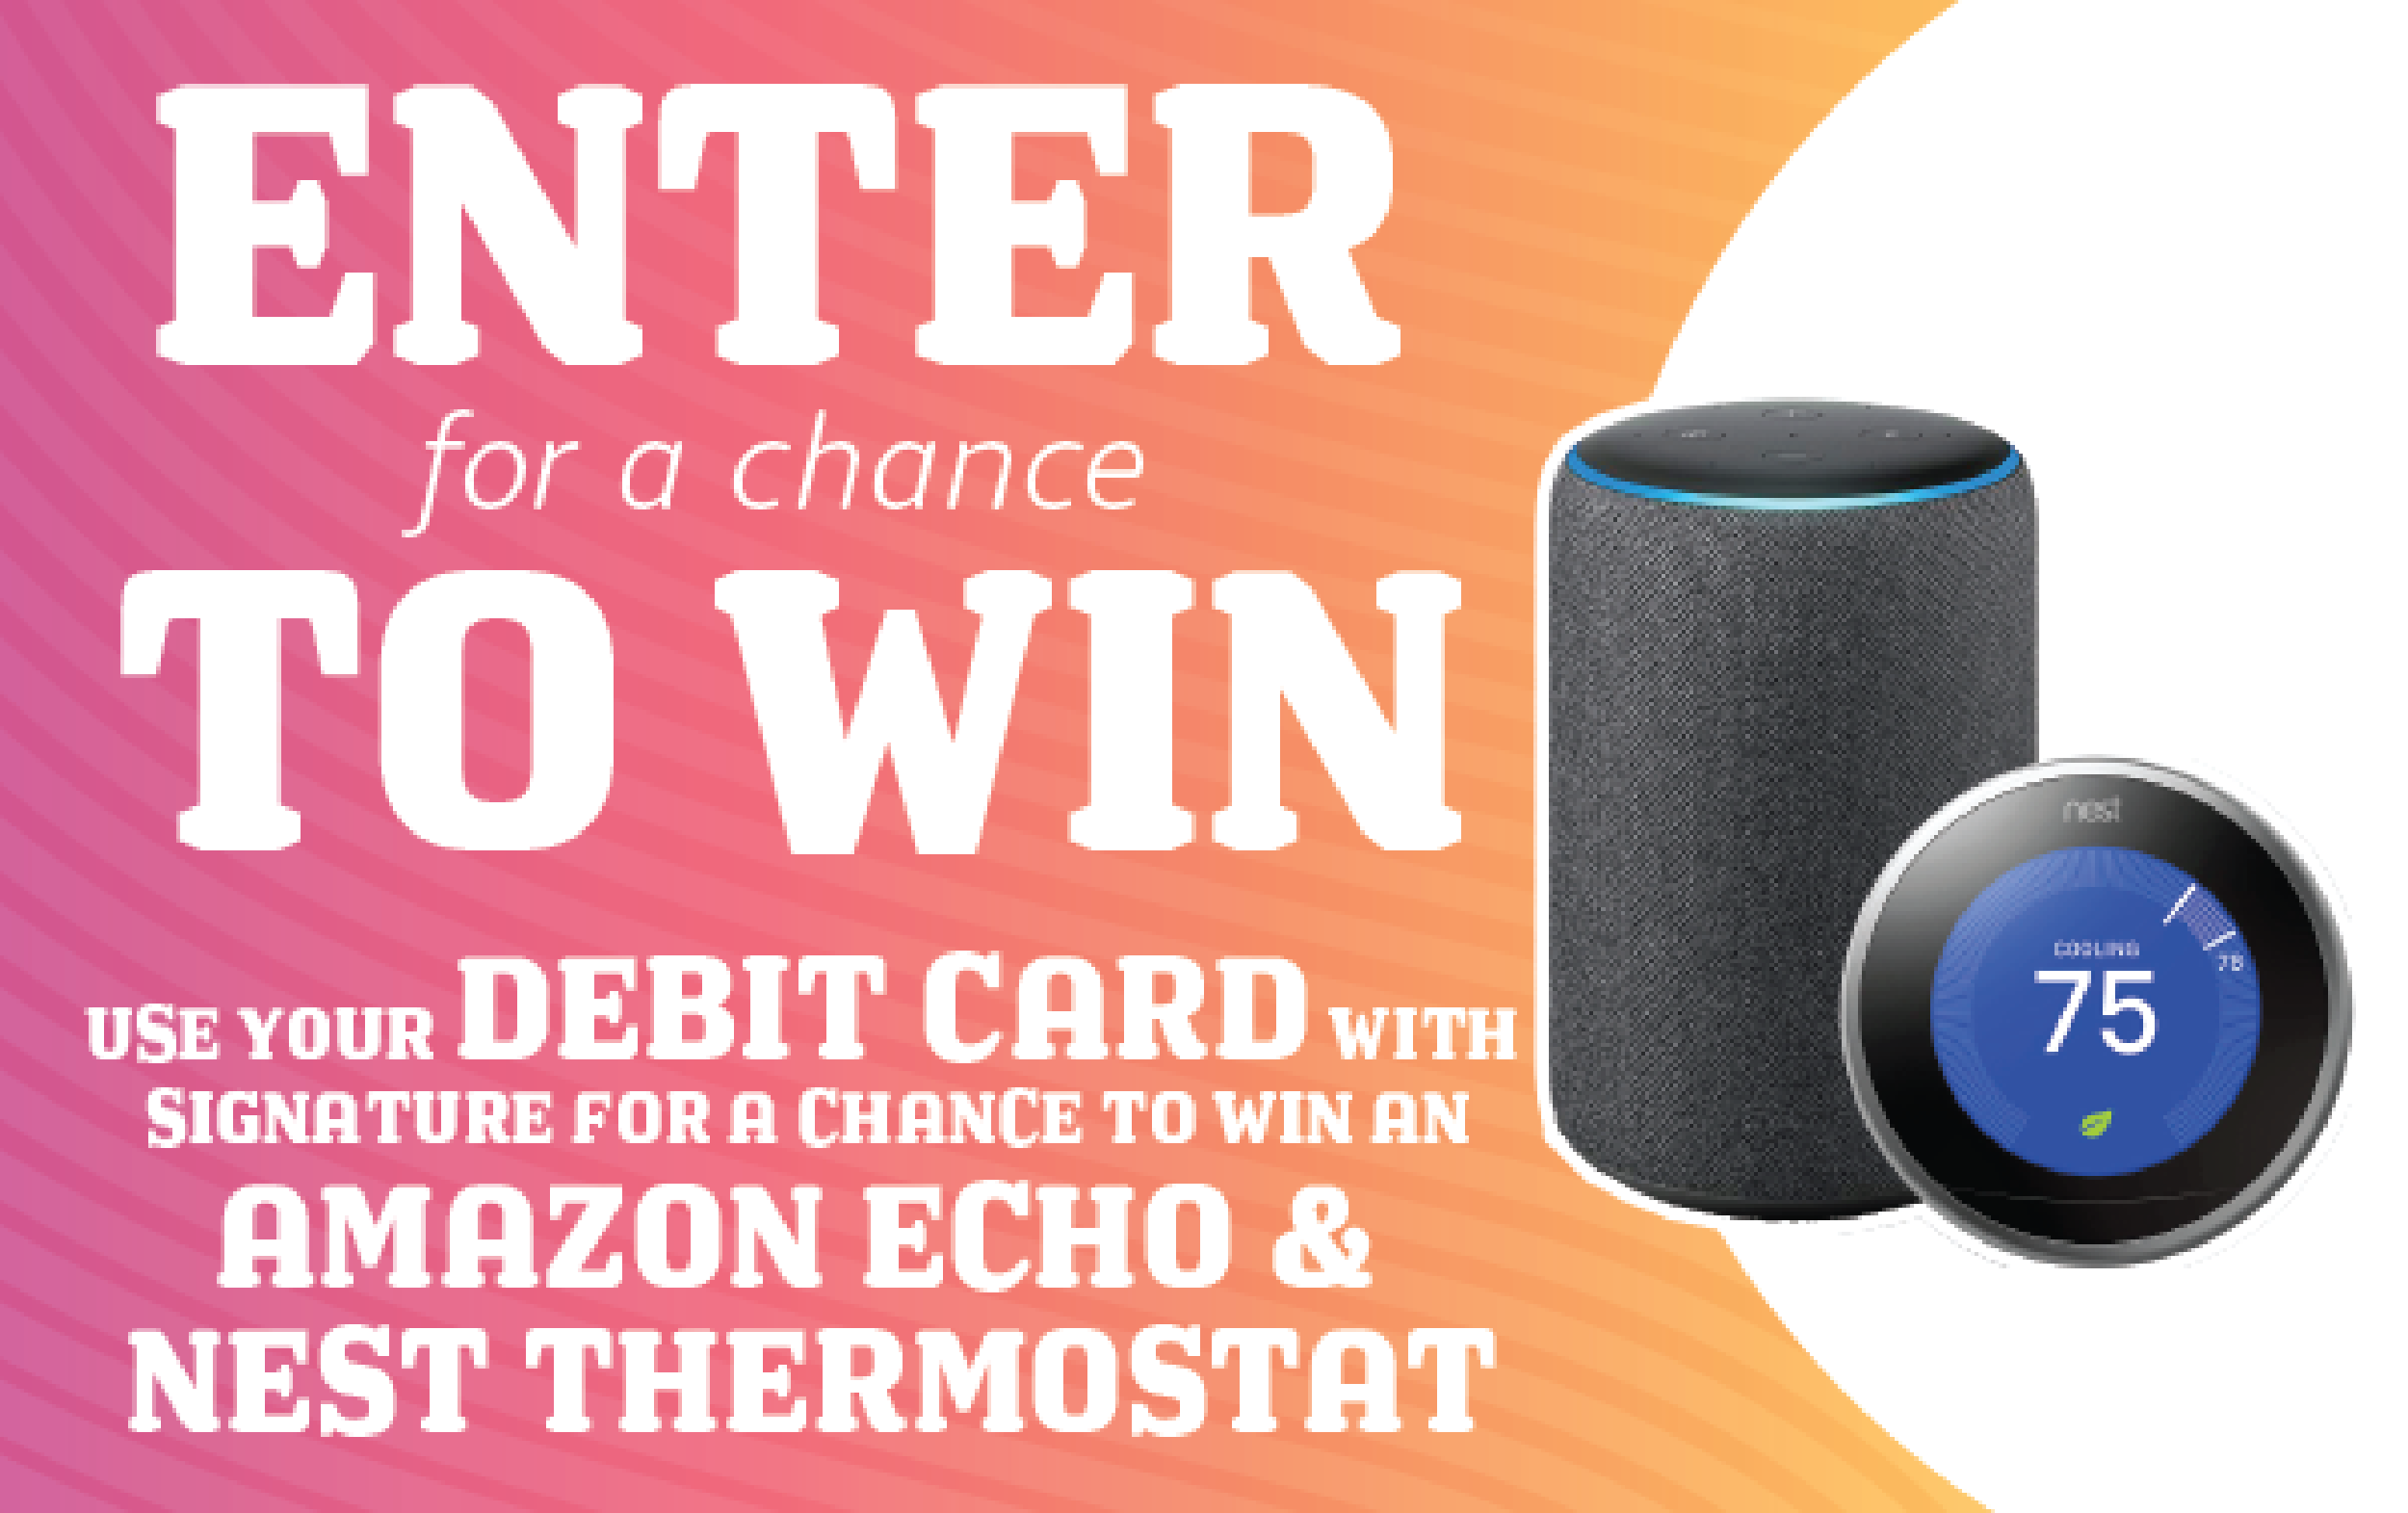 USE YOUR DEBIT CARD WITH SIGNATURE FOR A CHANCE TO WIN AN AMAZON ECHO AND NEST THERMOSTAT!